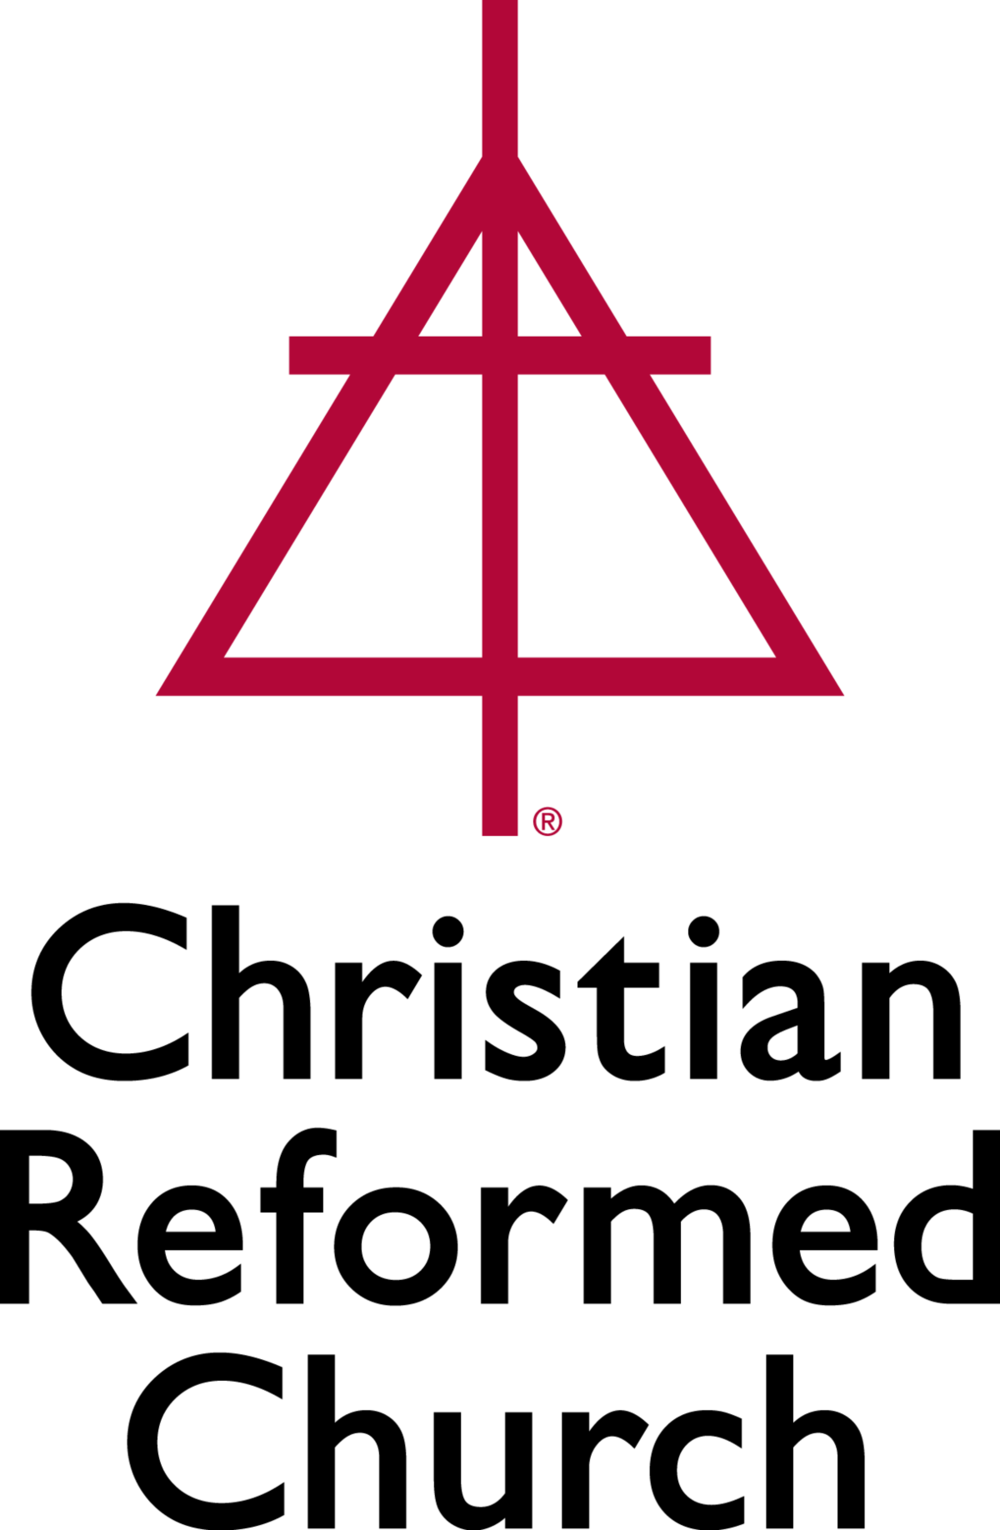 Christian_Reformed_Church_in_North_America_logo.png